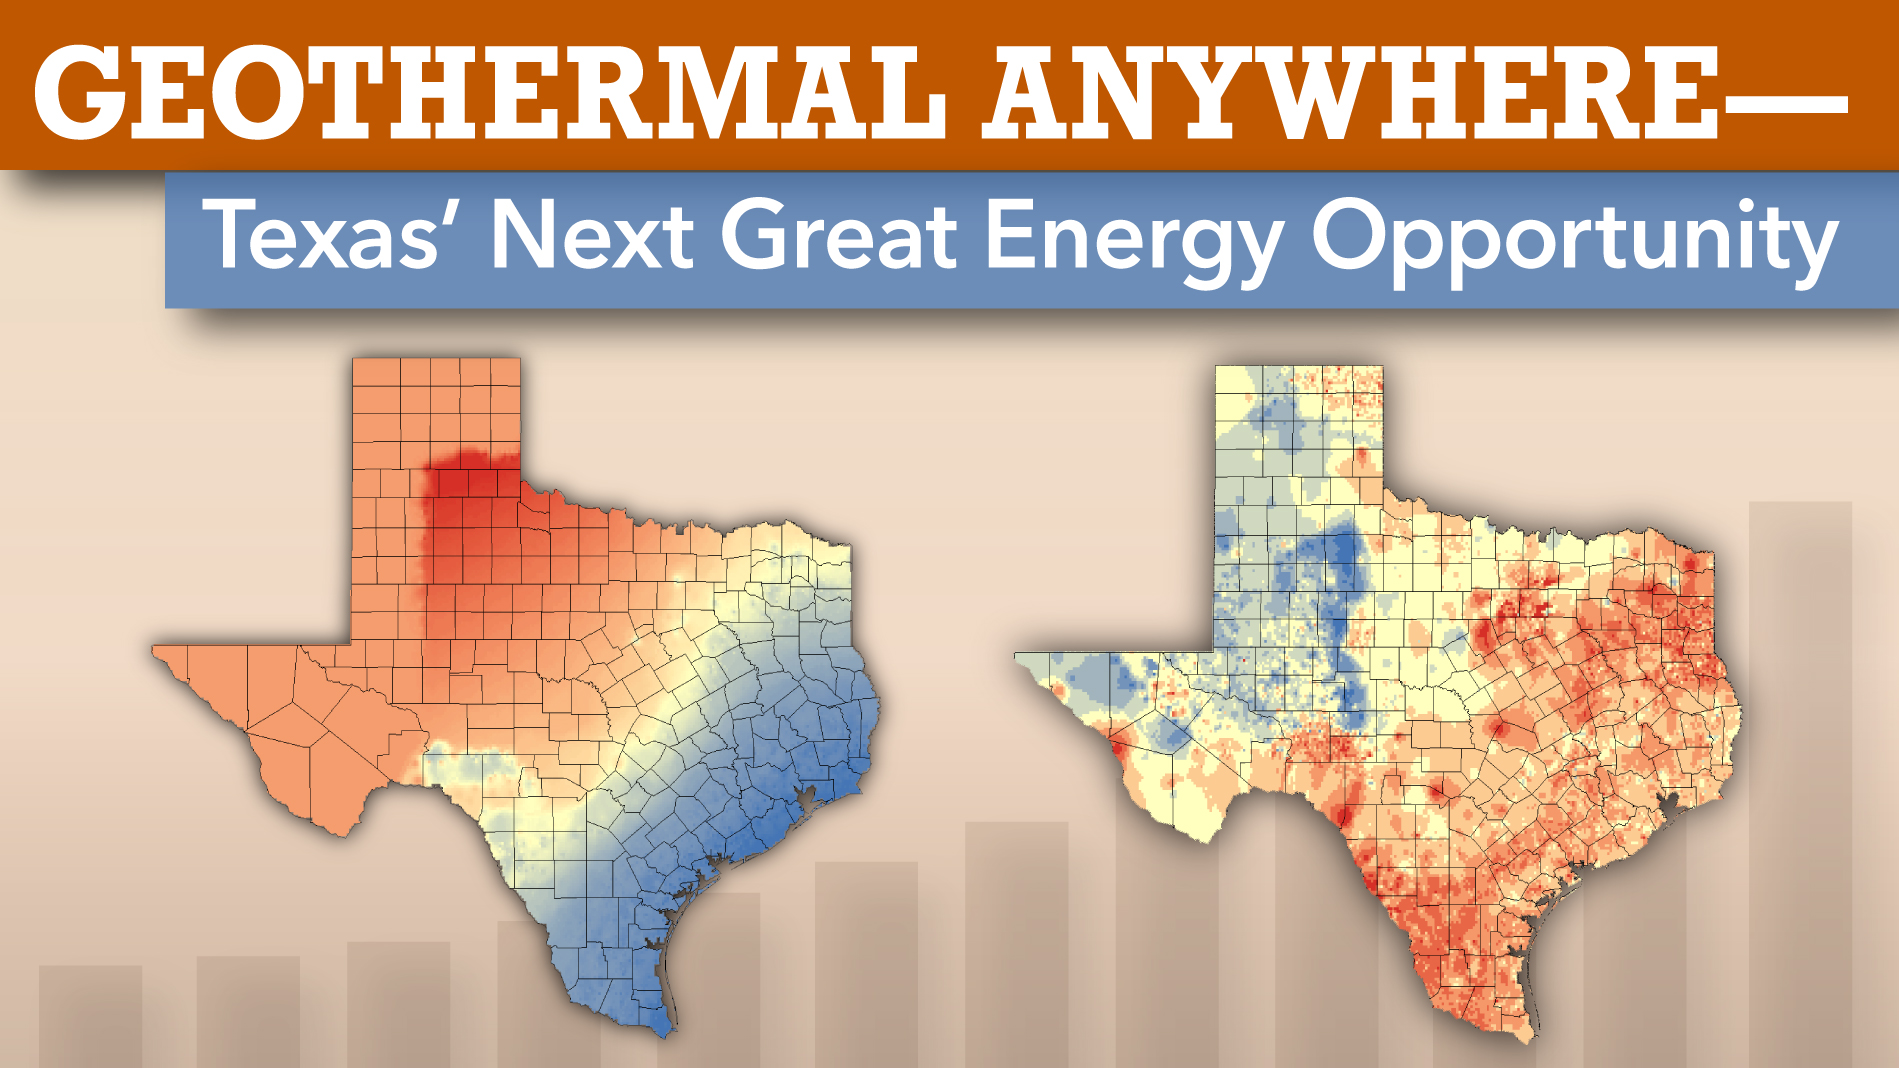 Geothermal Anywhere Texas Next Great Energy Opportunity